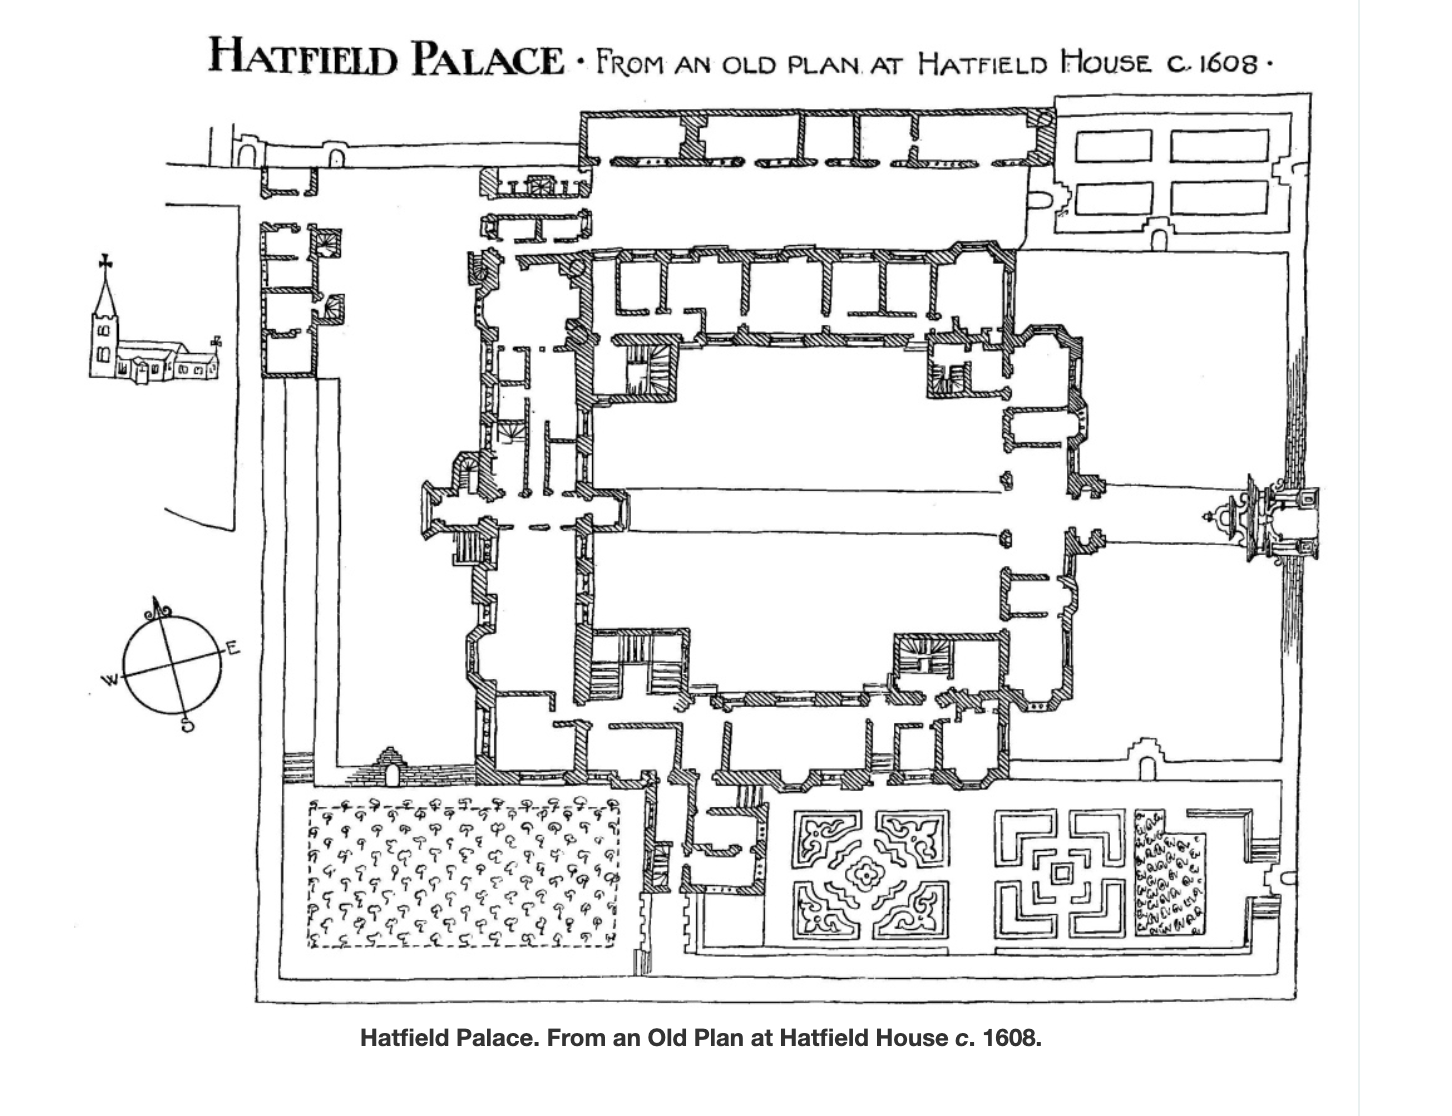 Plan showing the arrangement of buildings at the Old Palace of Hatfield